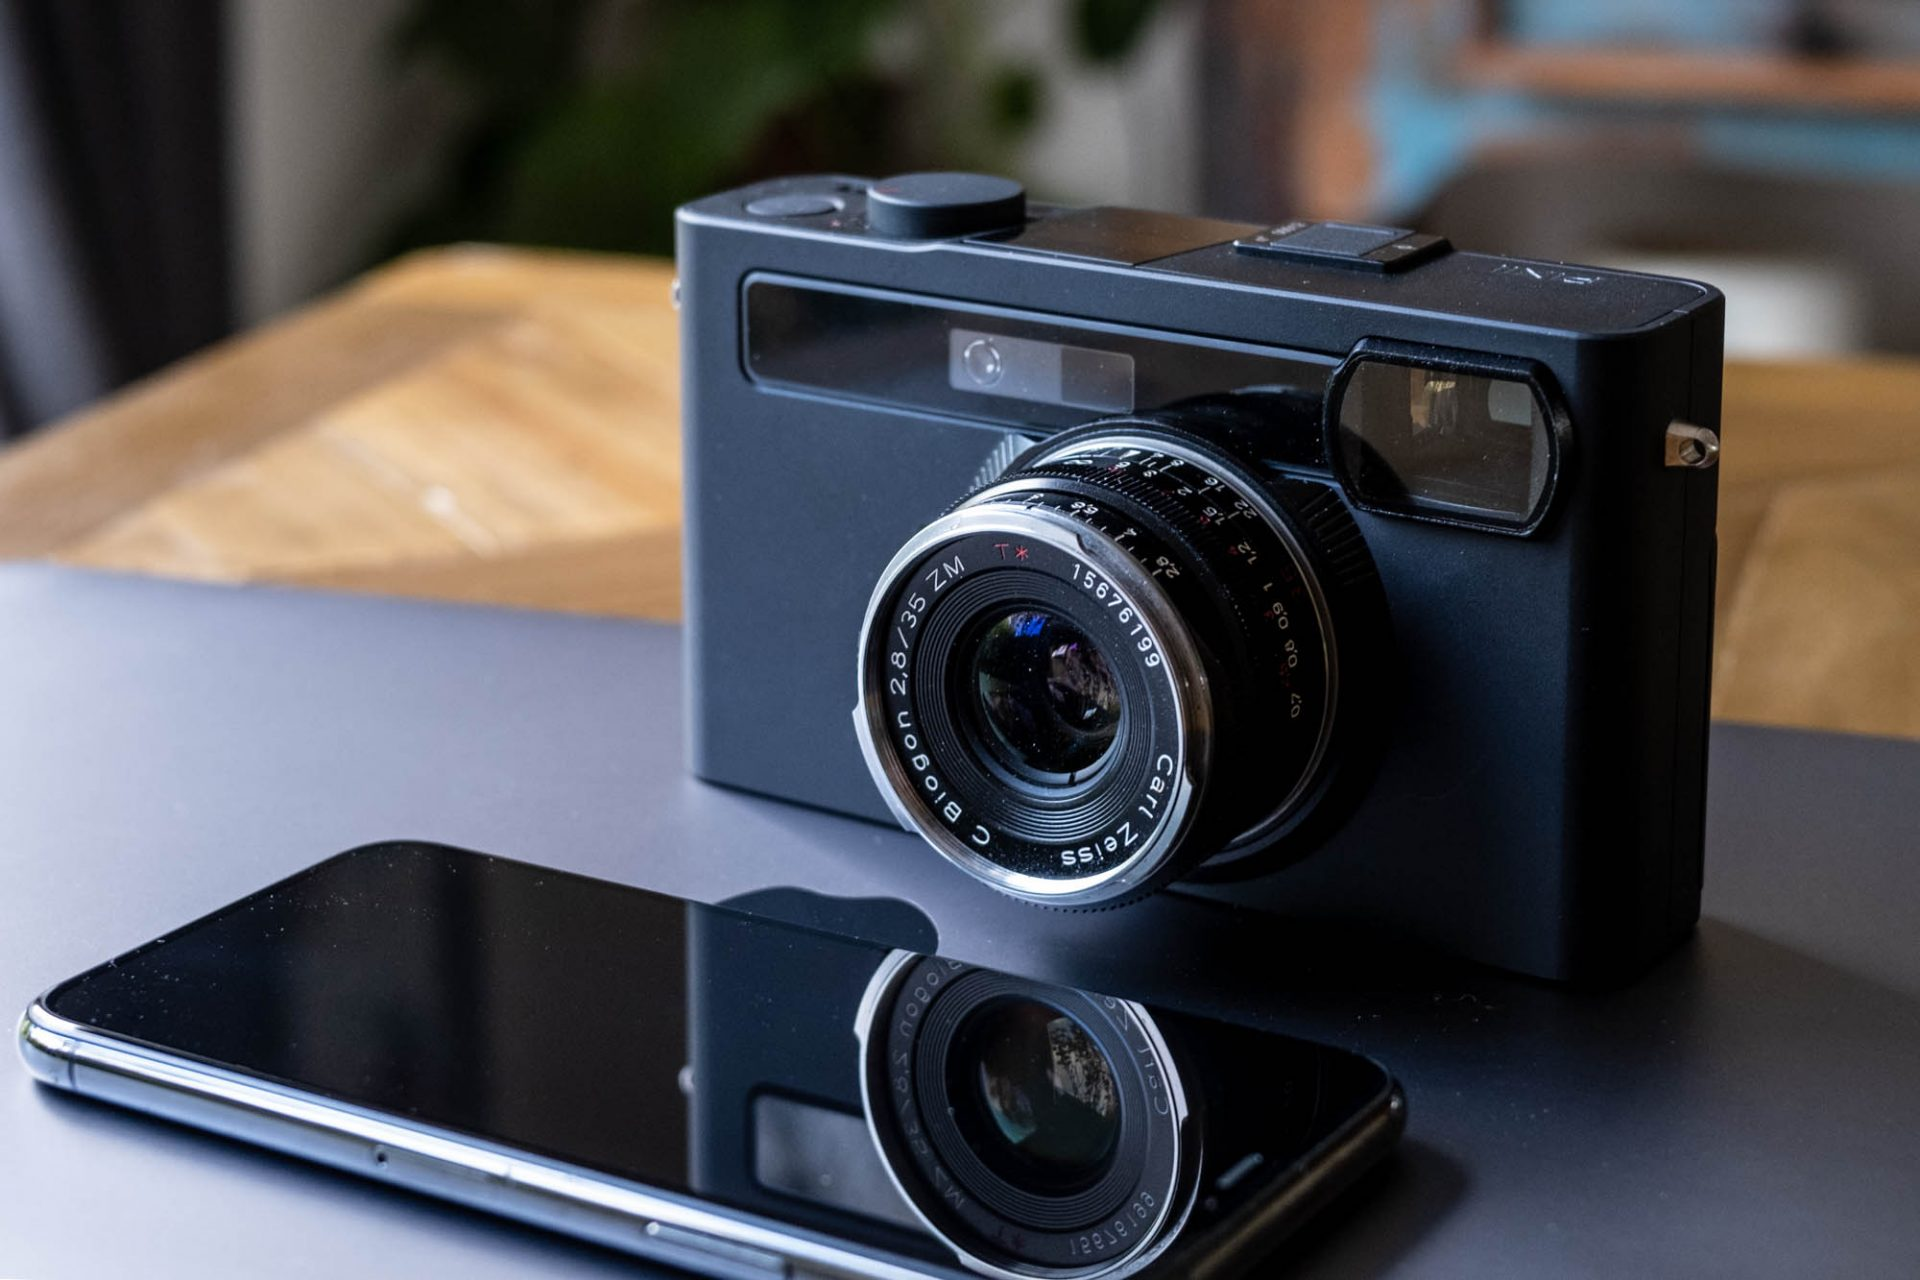 16 Pixii Model A10   A Primer into this New Digital Rangefinder ...